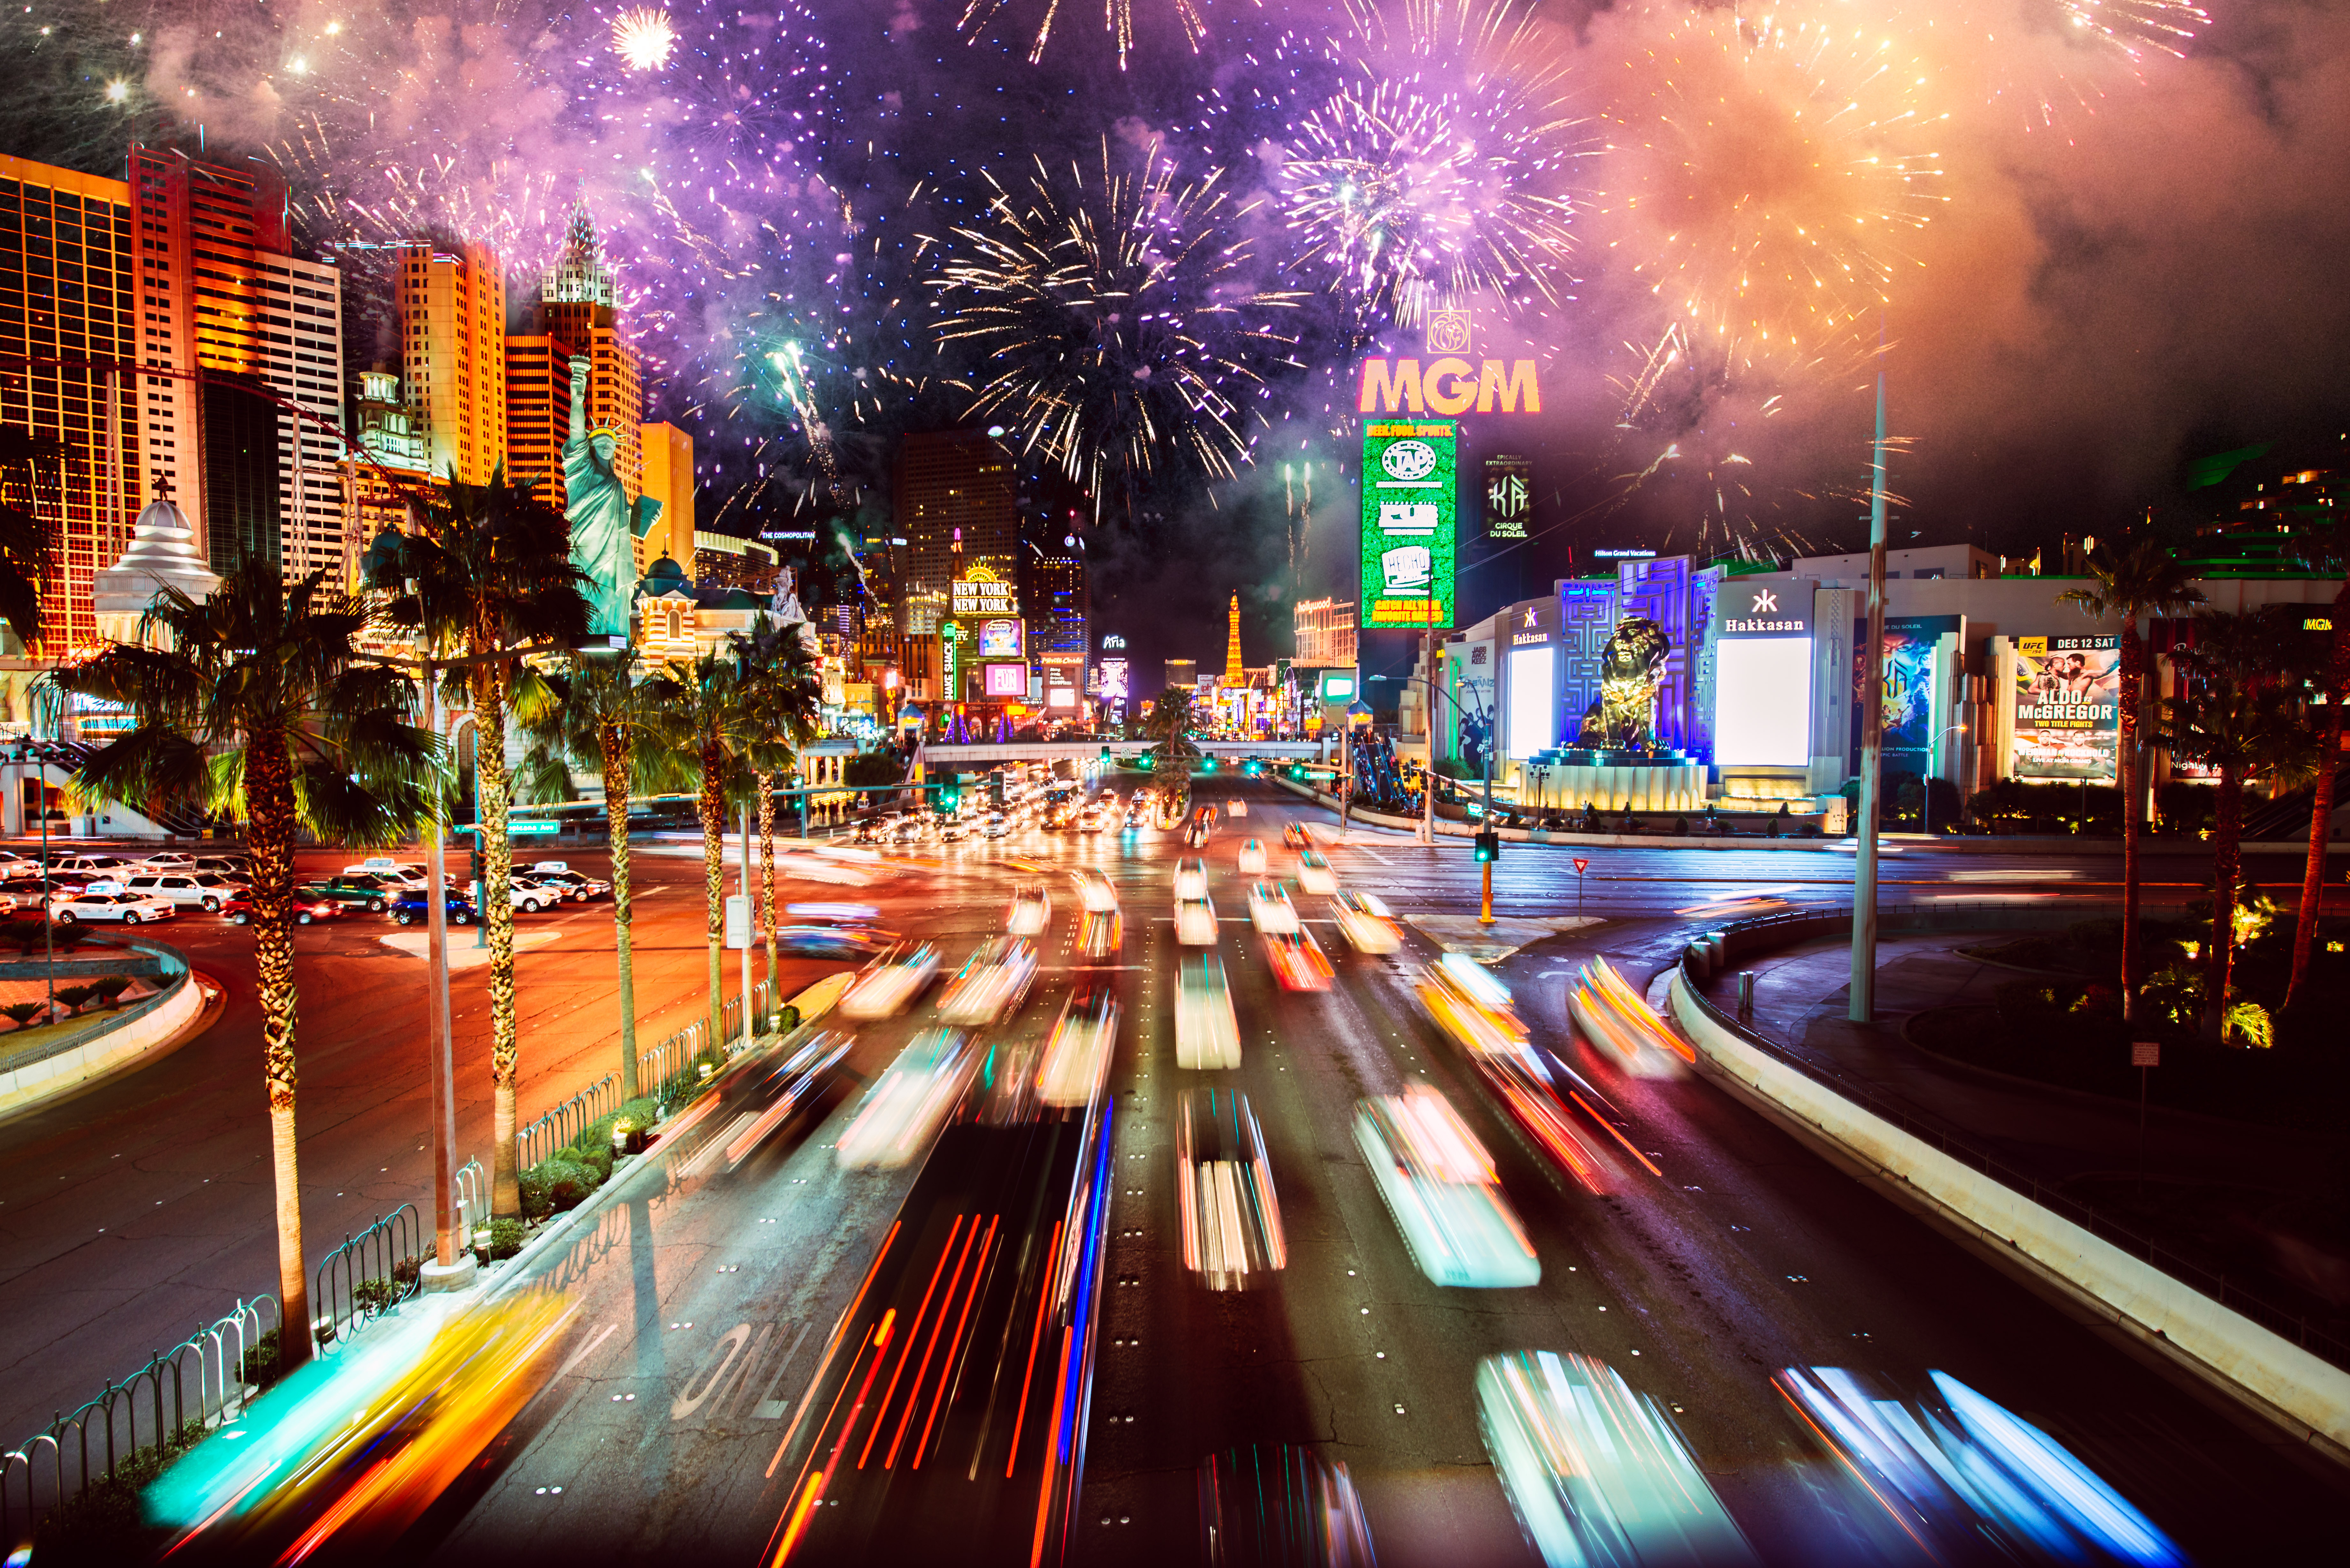 New_Years_Celebrations_With_Fireworks_In_Las_Vegas.jpg ...